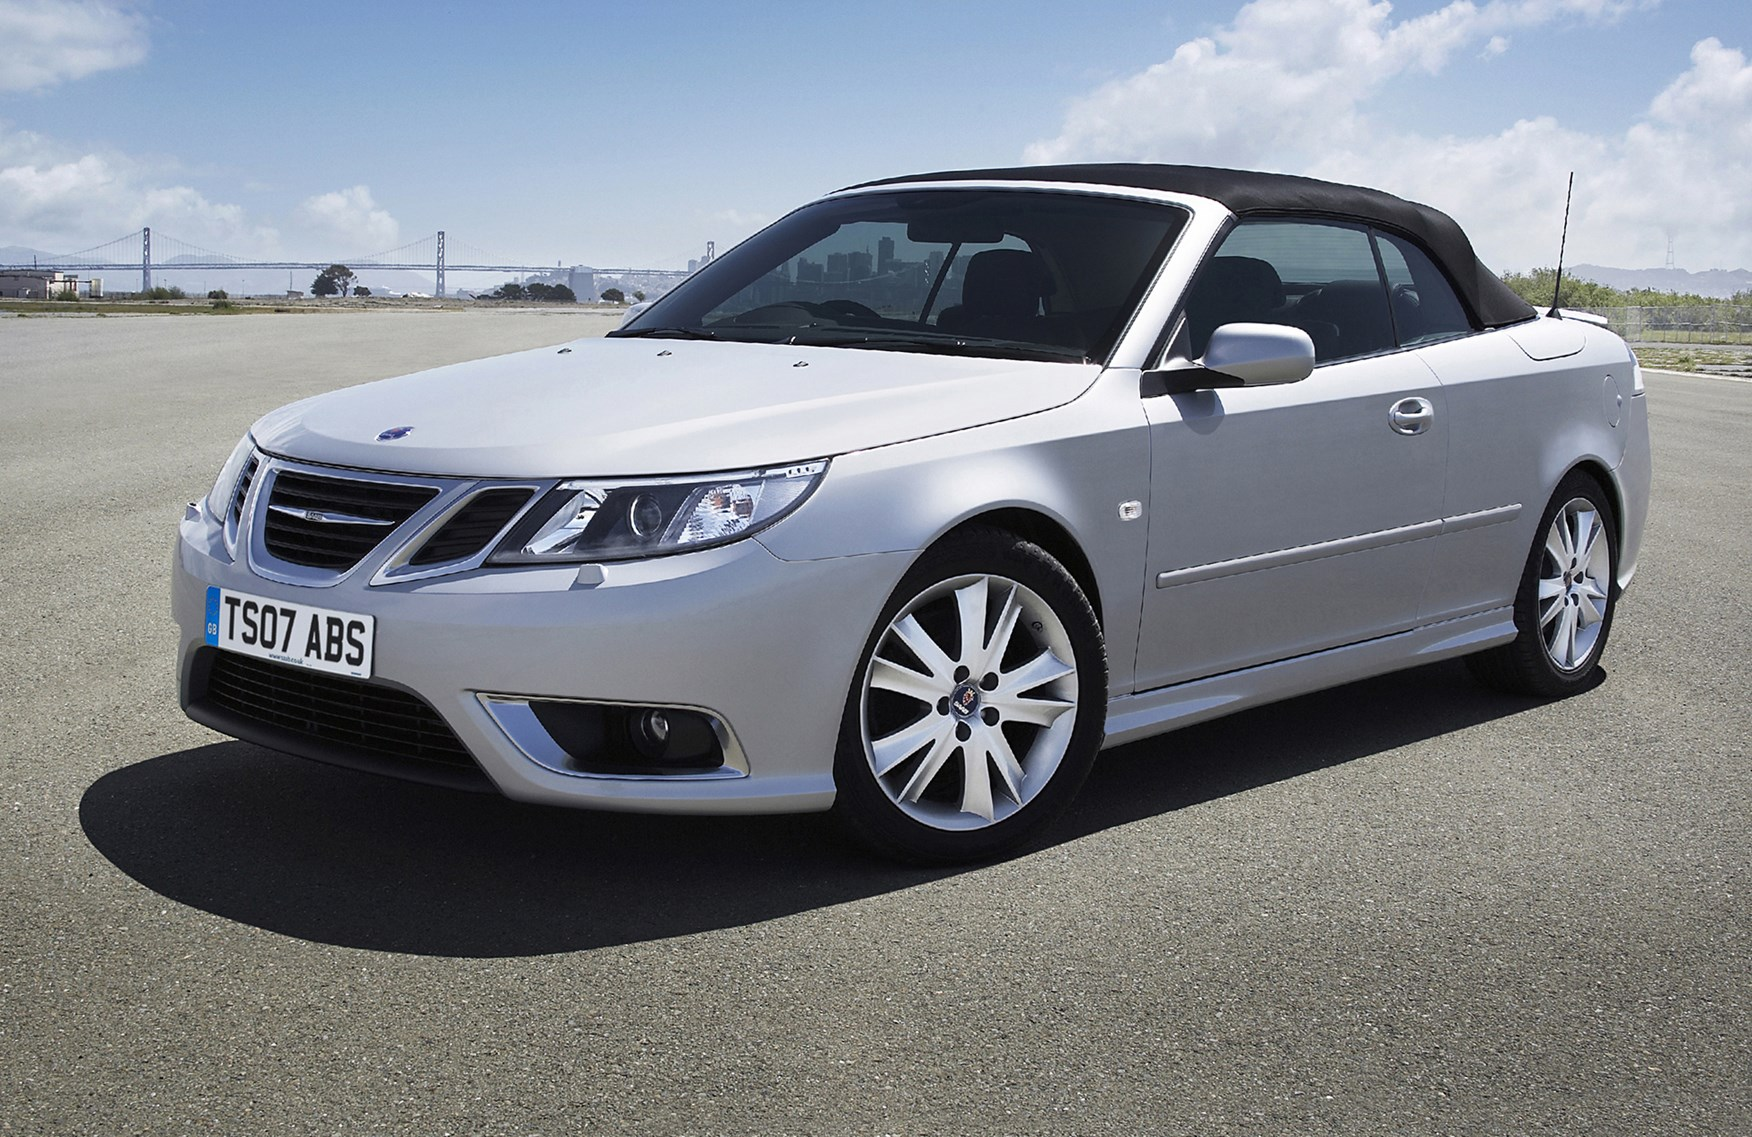 Cheap Cars For Sale >> Saab 9-3 Convertible Review (2003 - 2011) | Parkers